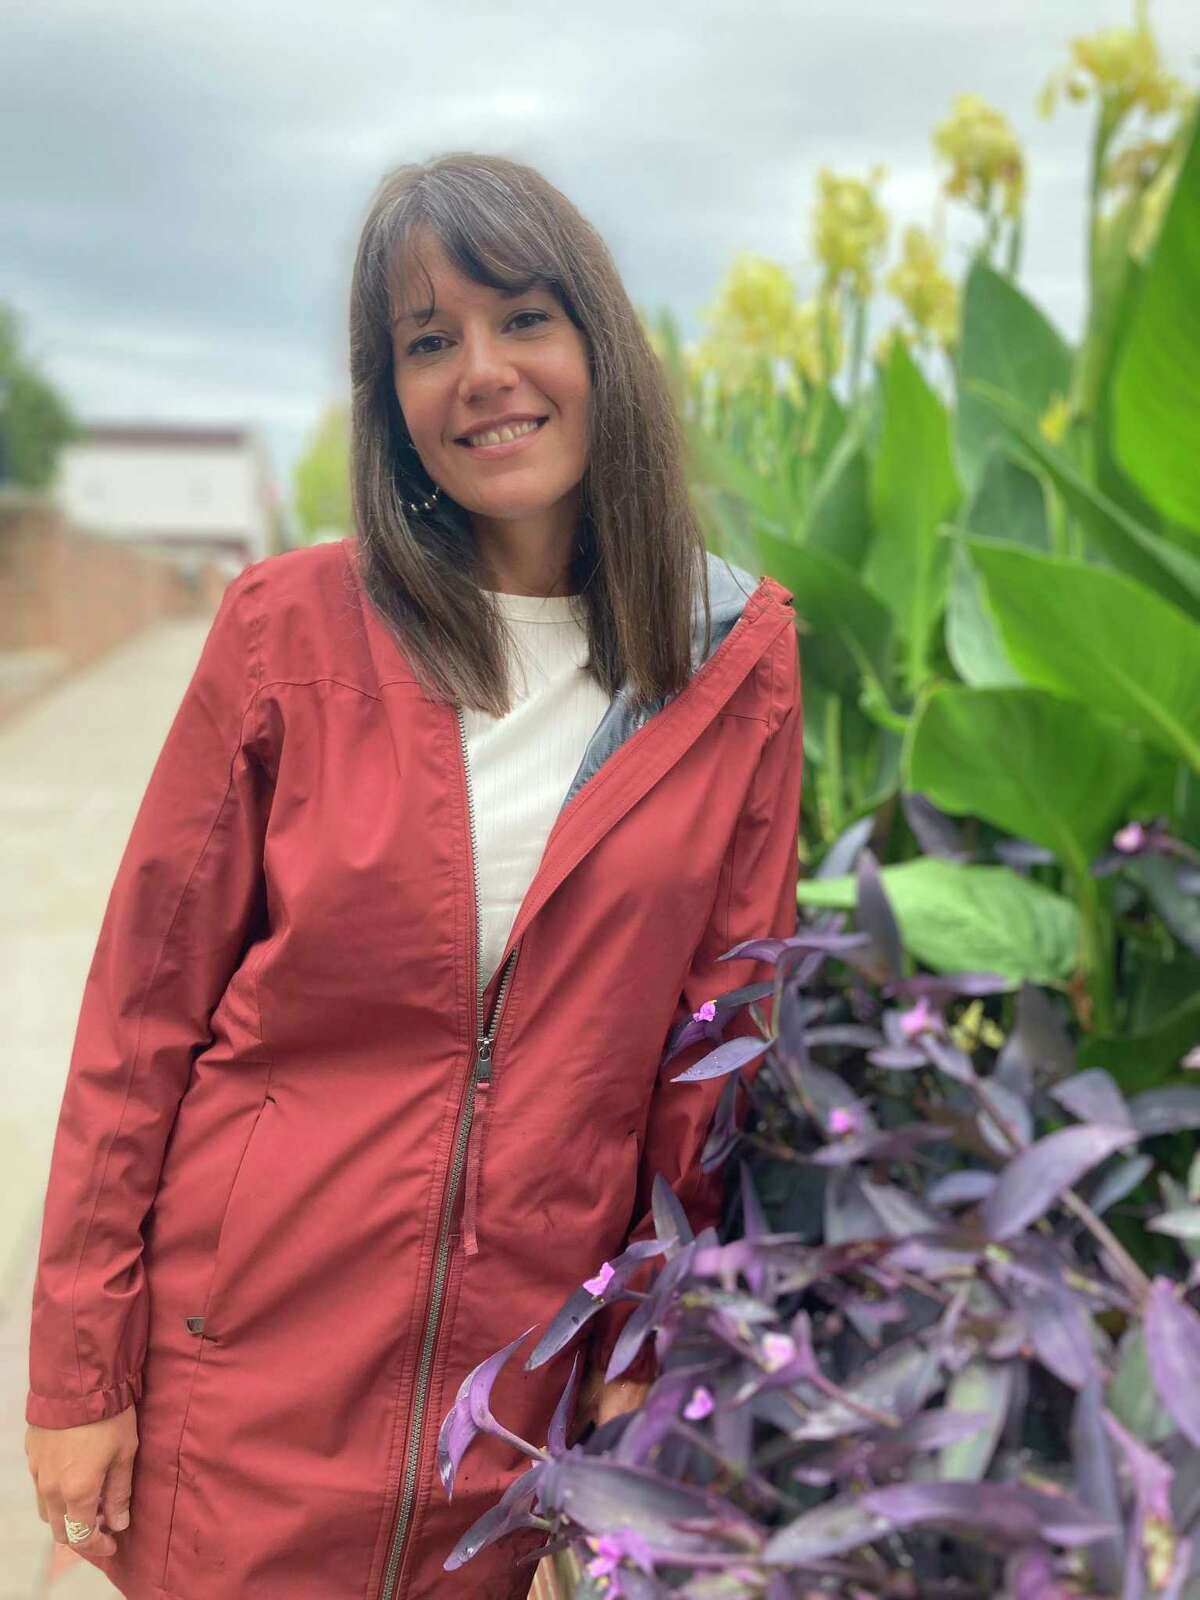 Pictured is Stephanie Richardson, horticulturist for the City of Midland. (Photo by Edward Hutchison/For the Daily News)